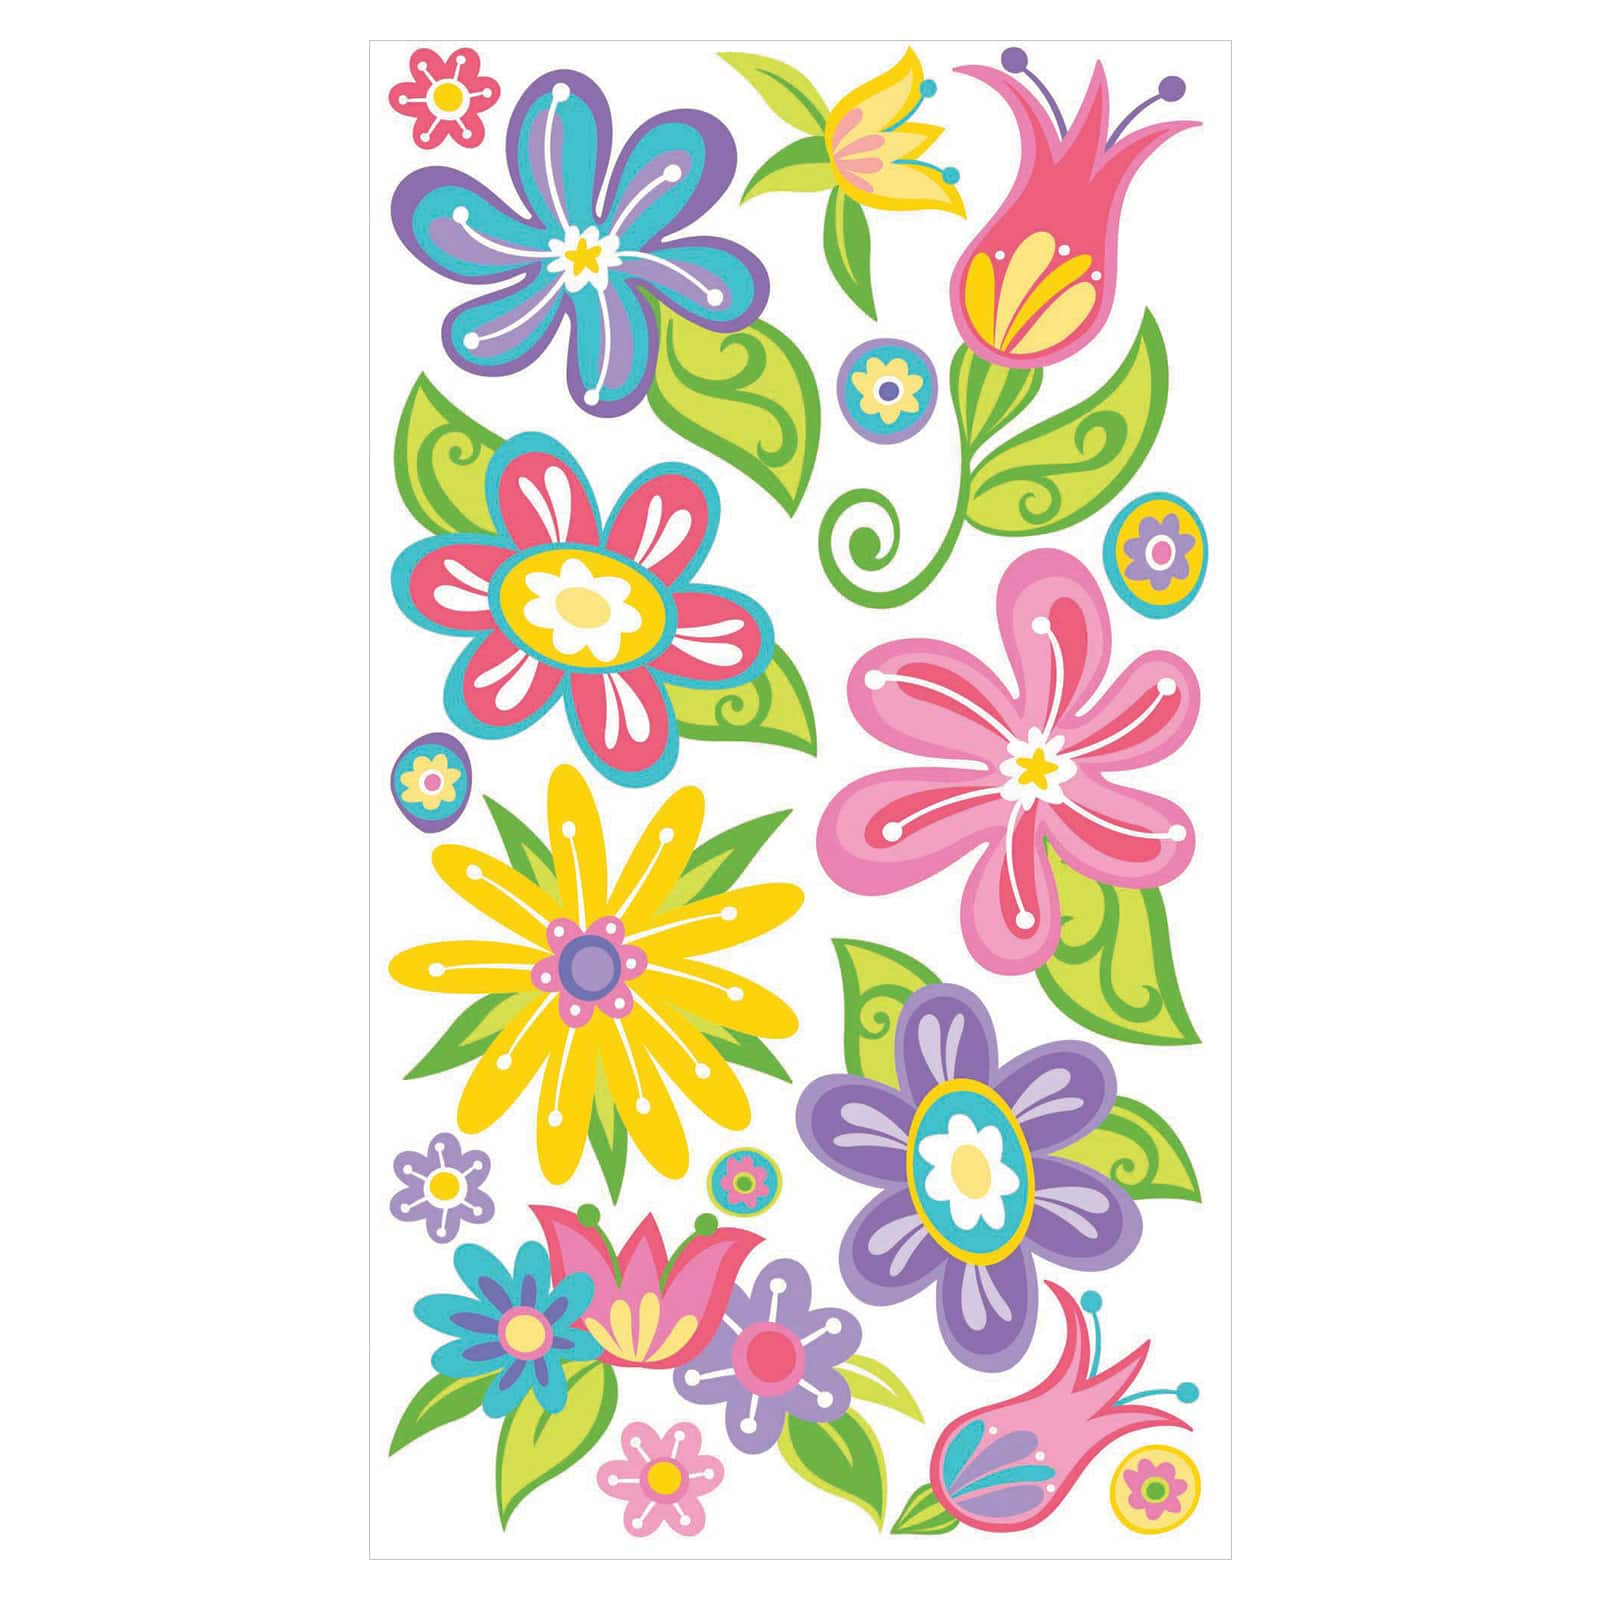 FANCIFUL FLOWERS STICKO STICKERS daisy floral